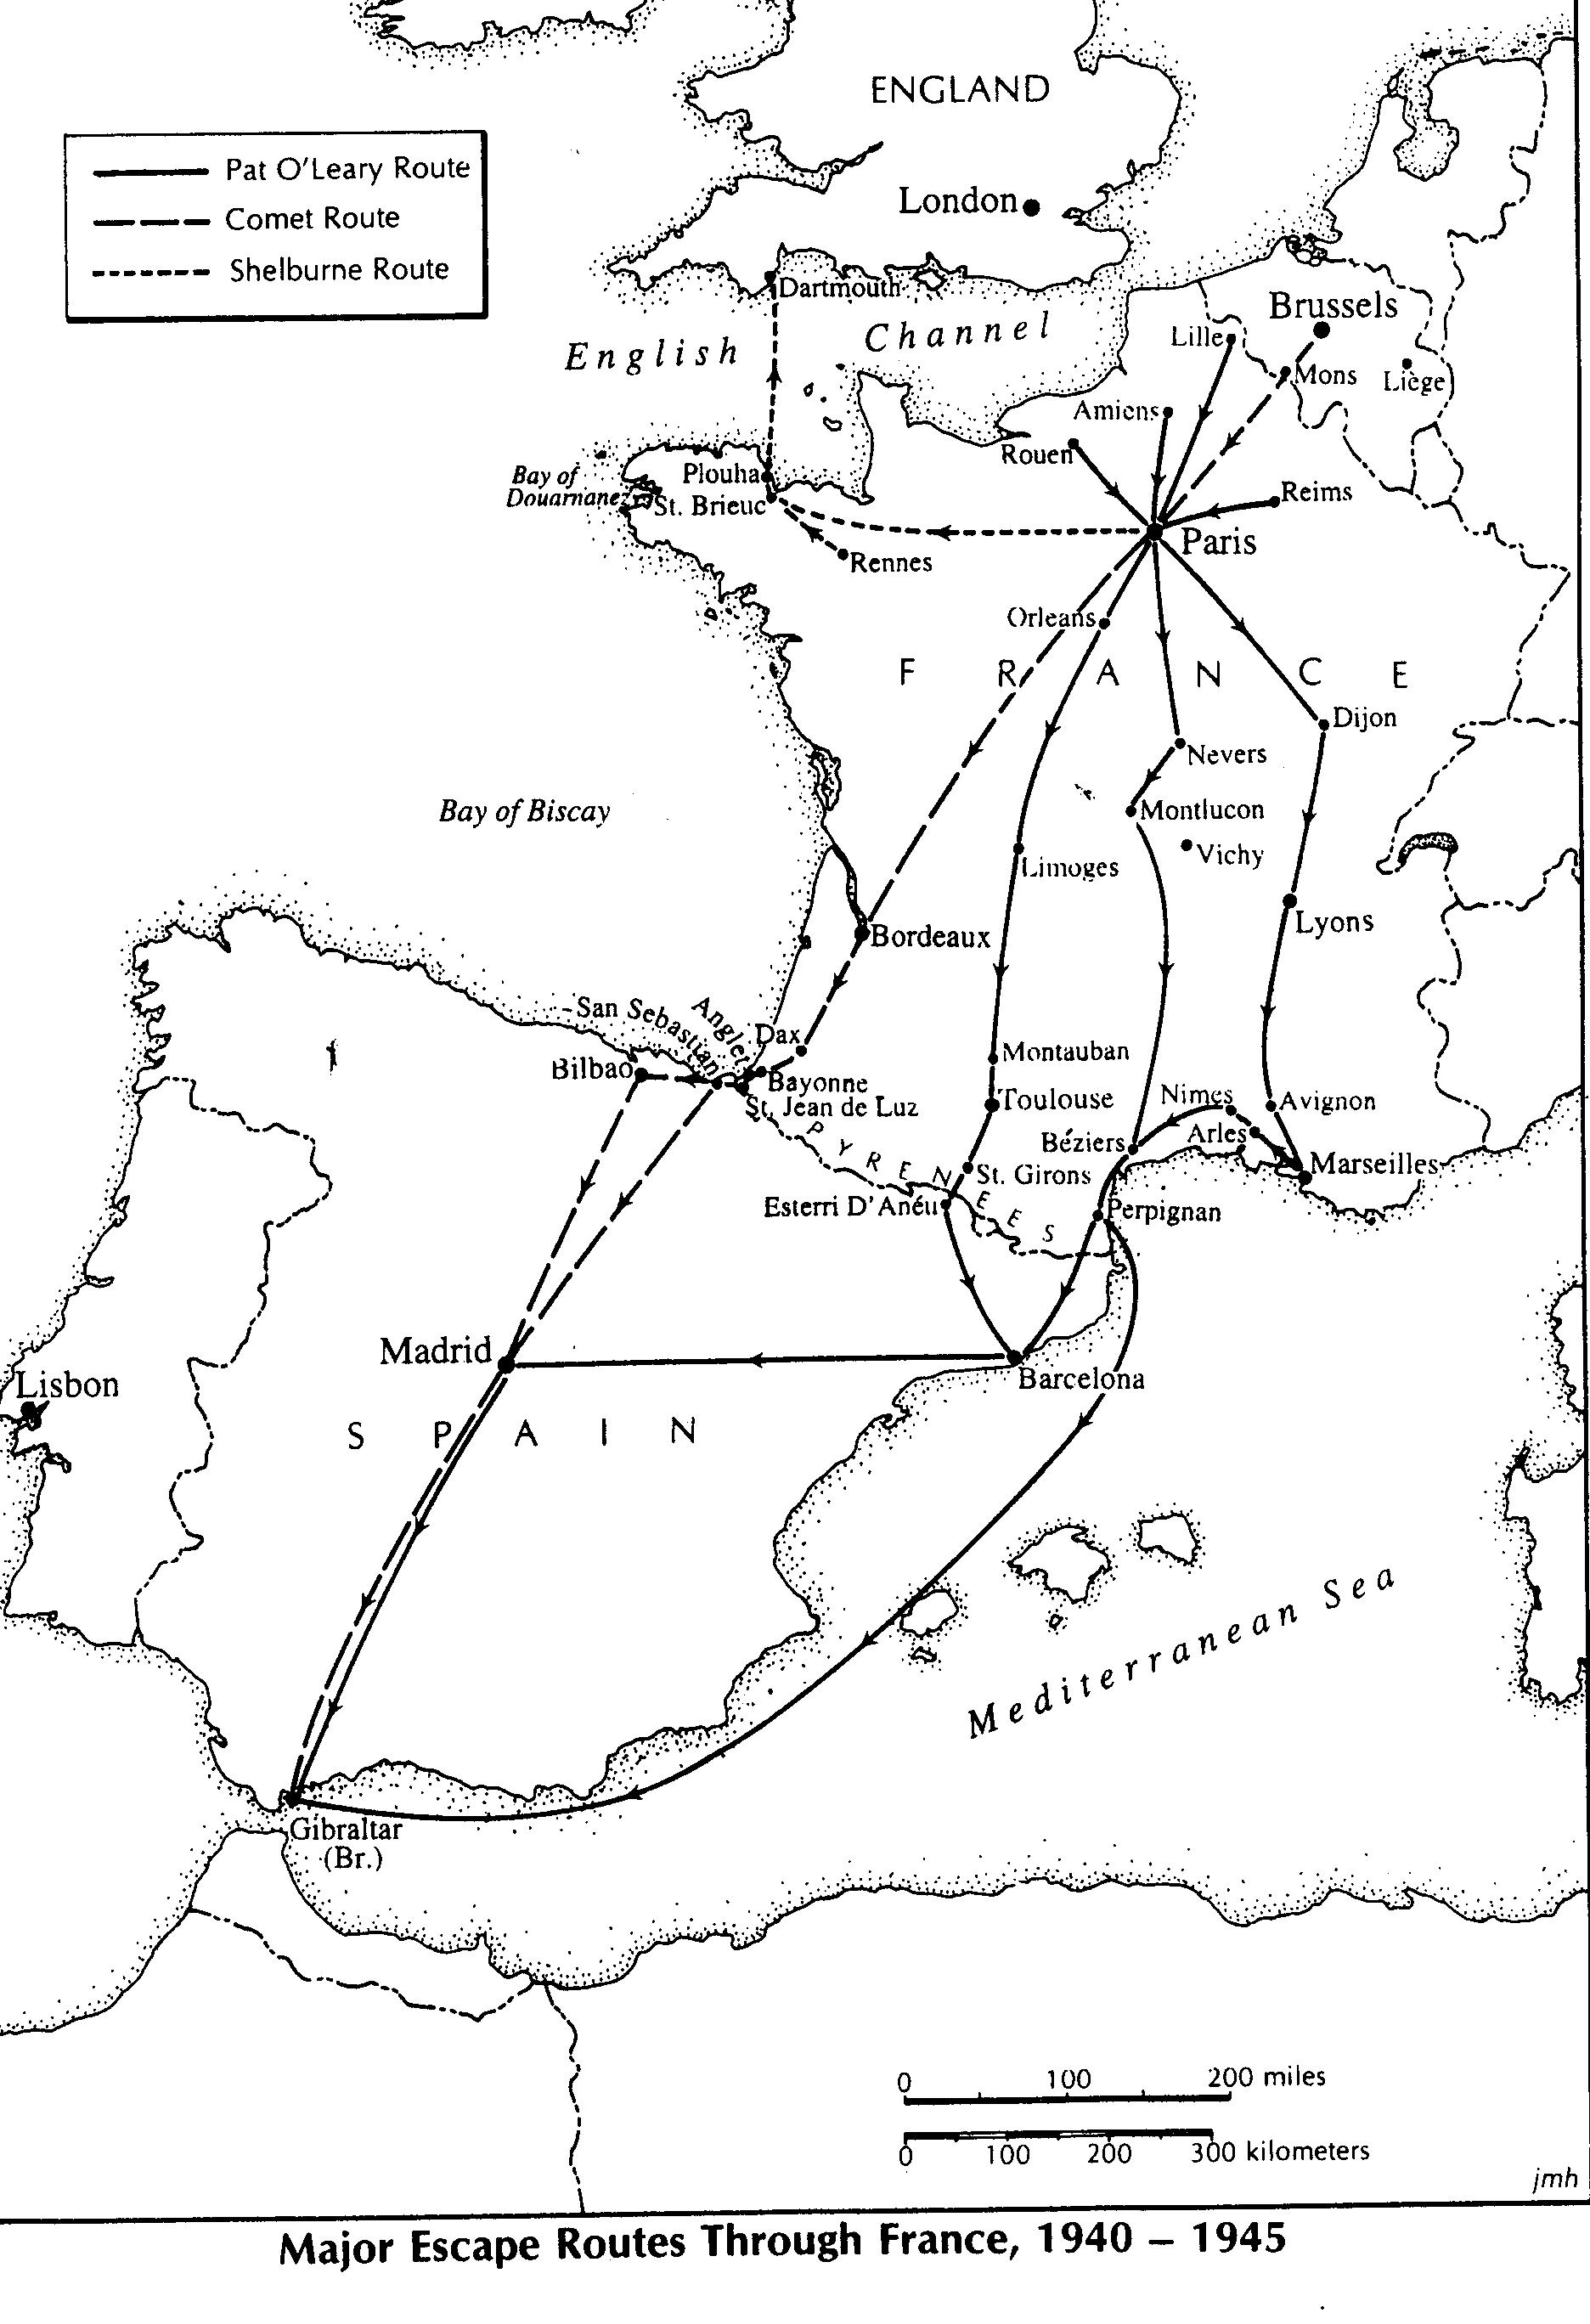 Maps of Major Escape Routes Through France WWII Netherlands Escape